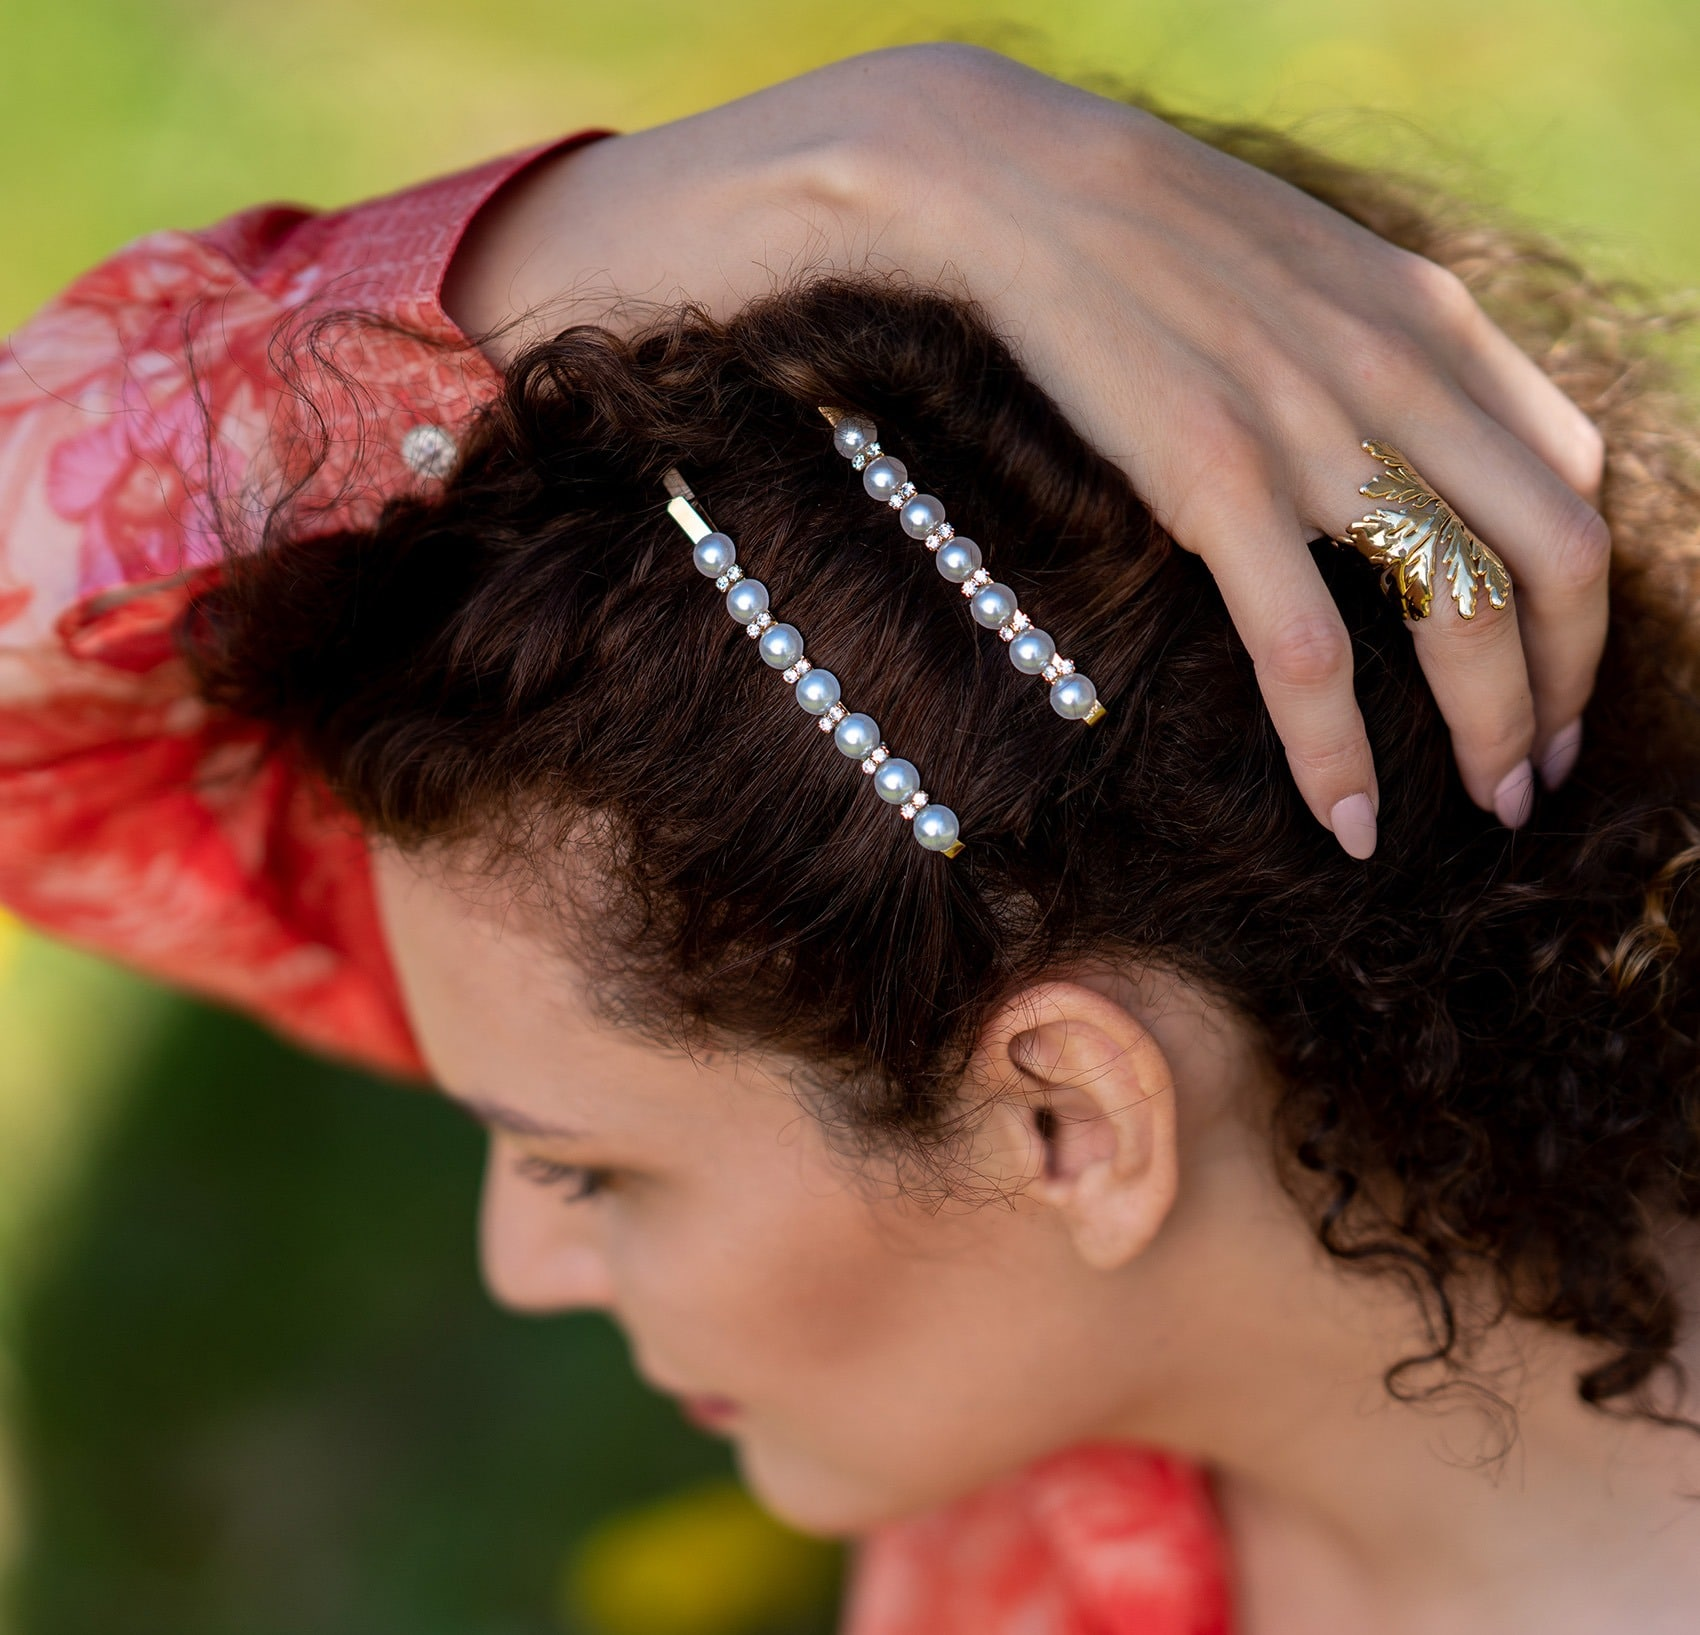 Curly hair and gold hair clip